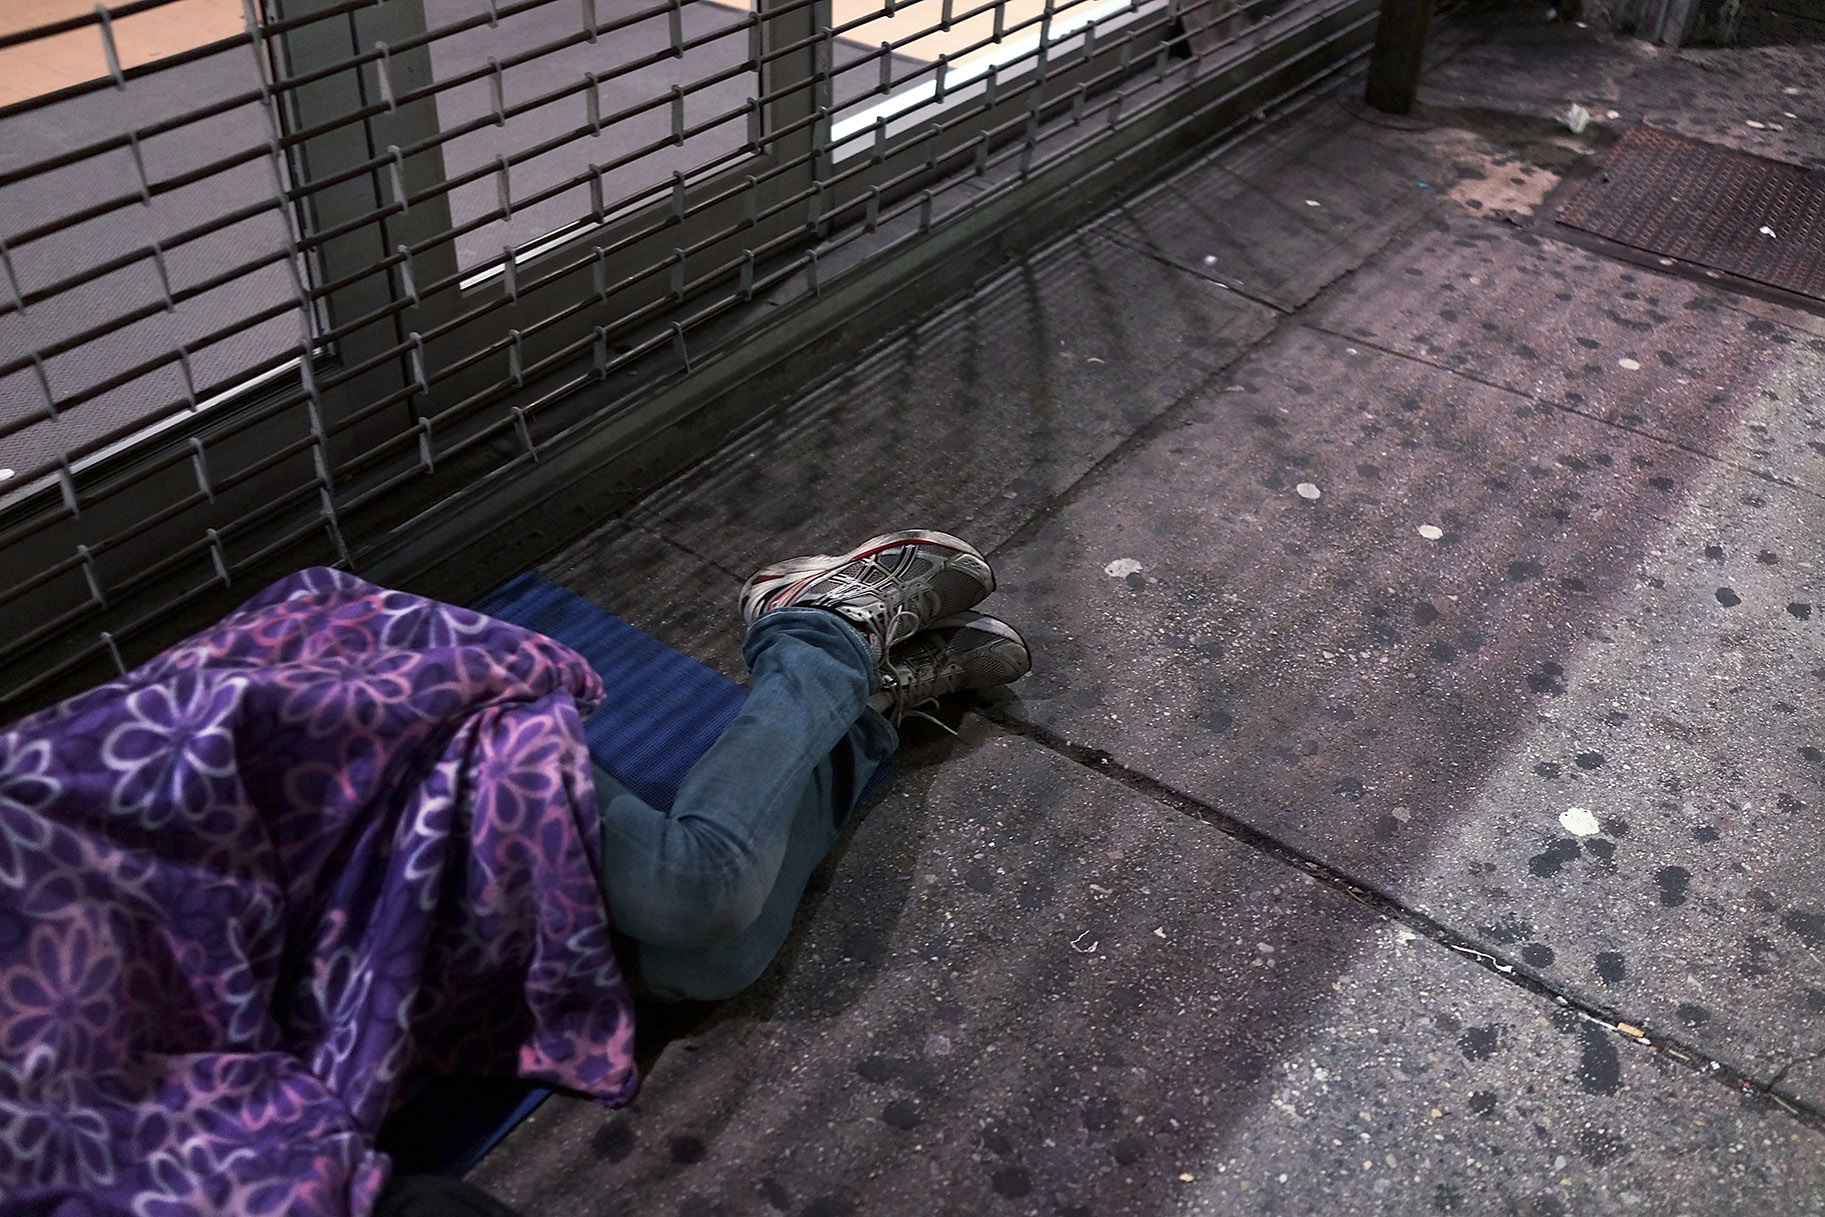 Nyc Shelter Worker Arrested For Sexually Abusing Homeless